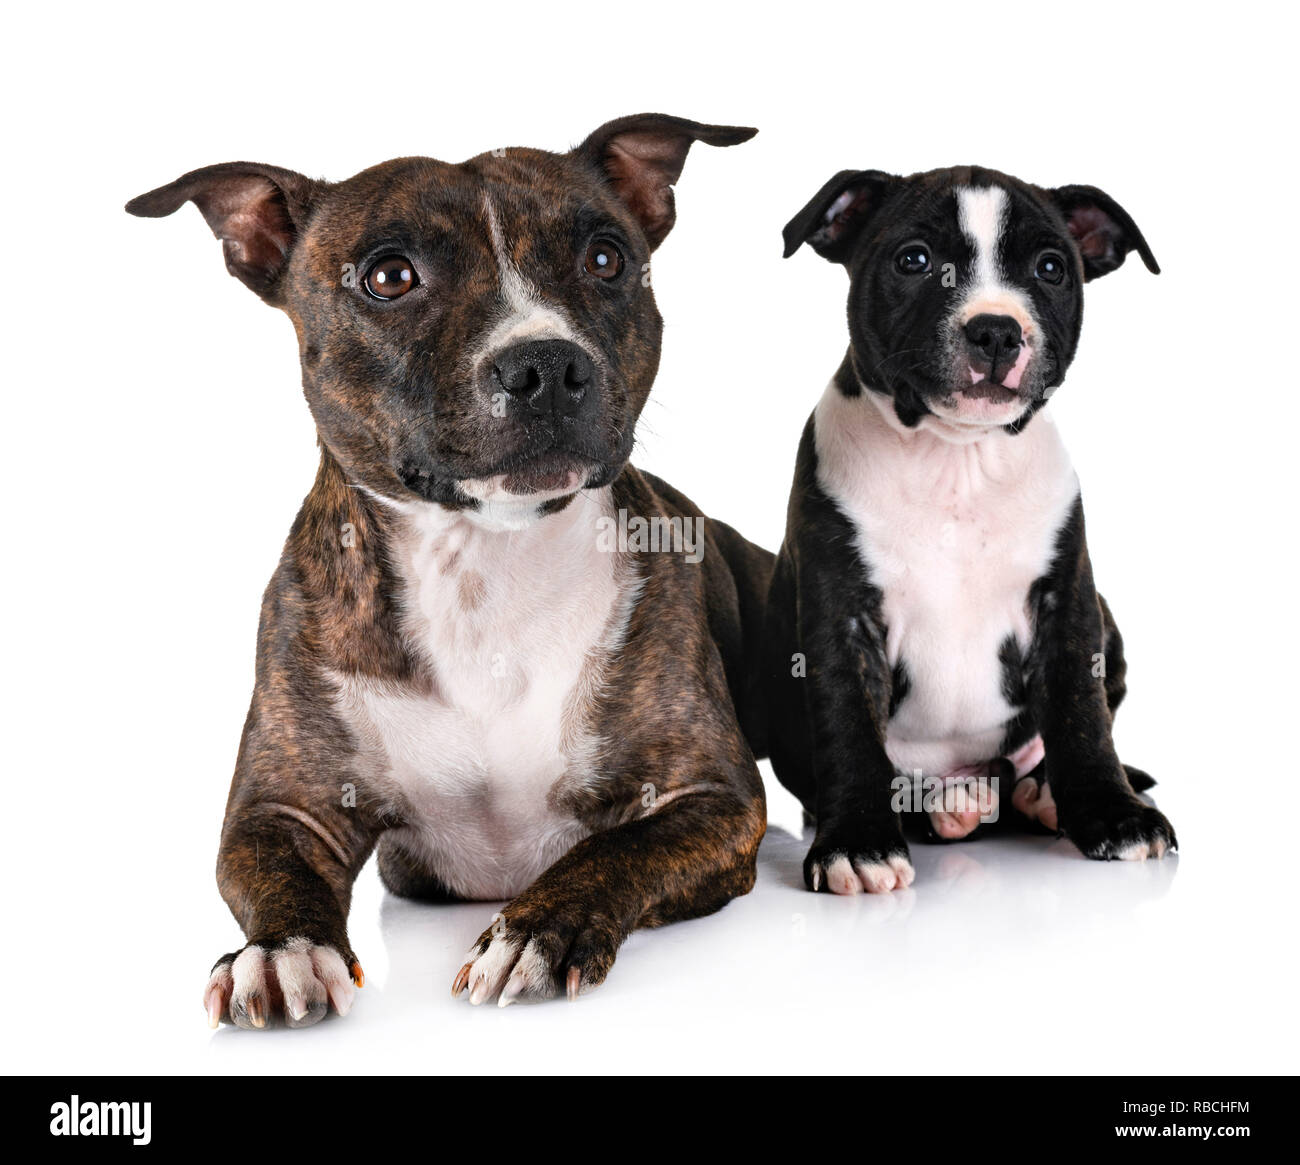 staffordshire bull terriers in front of white background - Stock Image